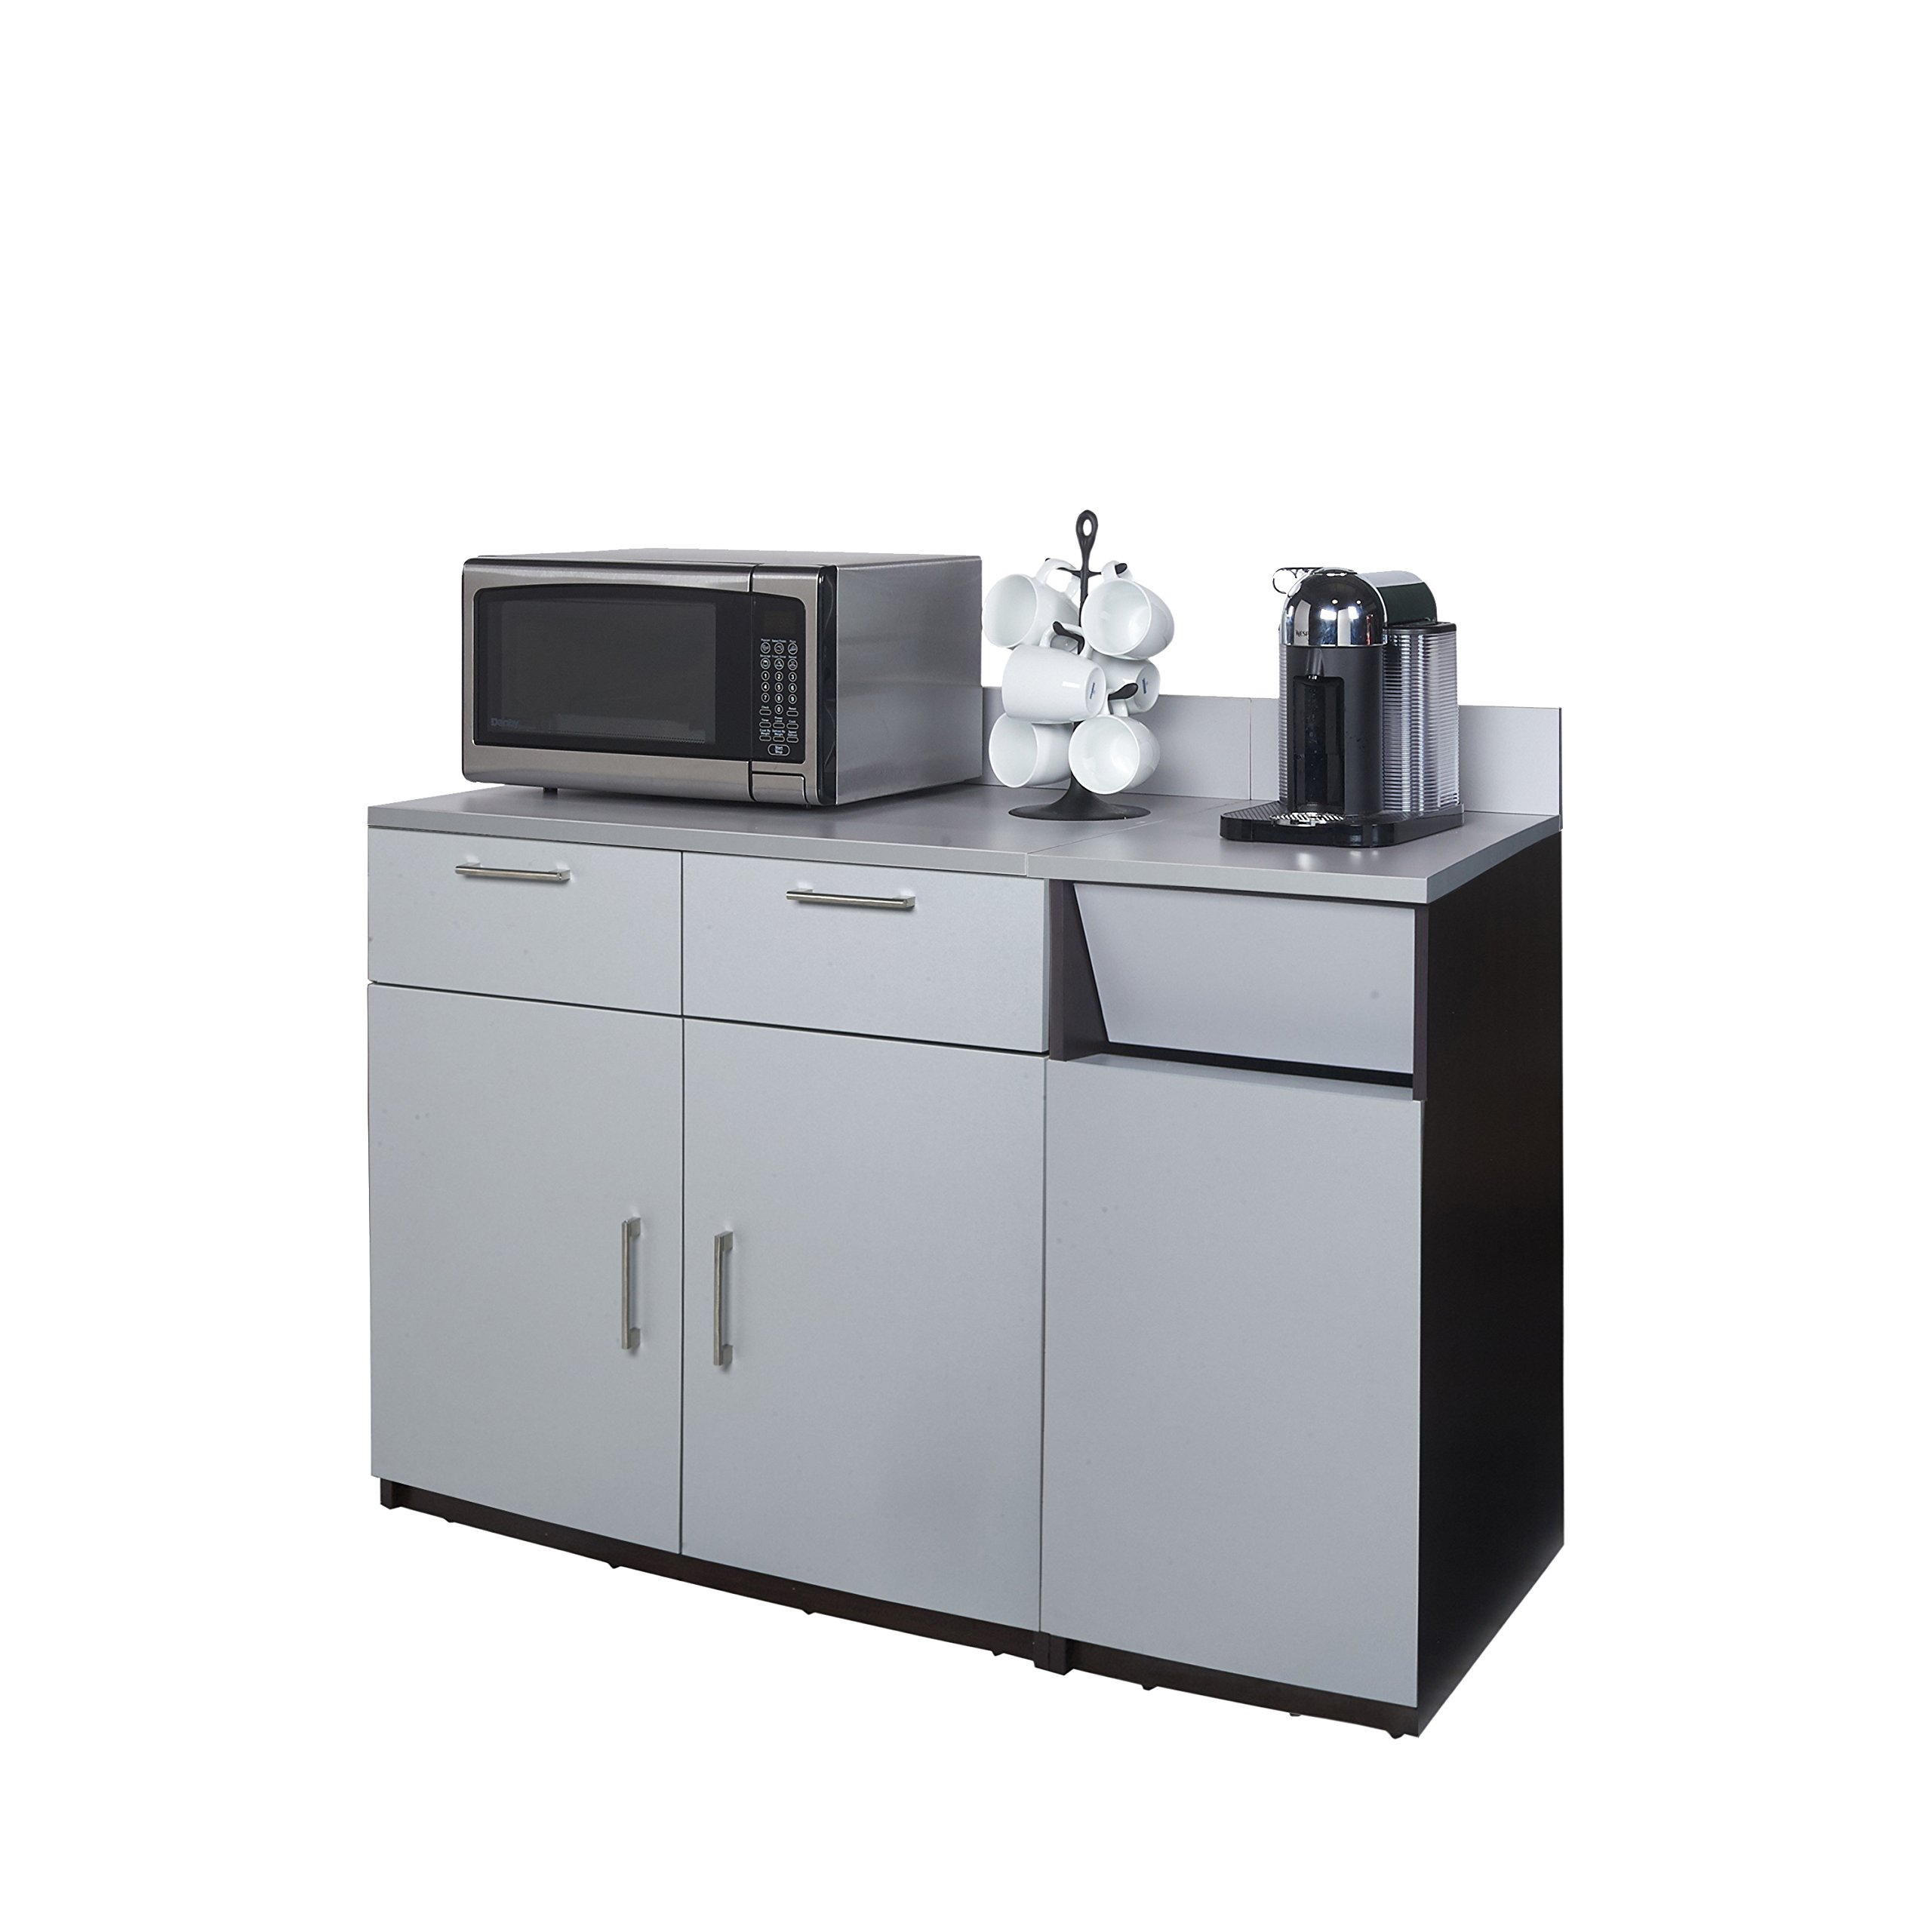 Coffee Kitchen Lunch Break Room Cabinets Model 4285 BREAKTIME 2 Piece Group Color Espresso/Silver Metallic - Factory Assembled (NOT RTA) Furniture Items ONLY. by Breaktime (Image #1)